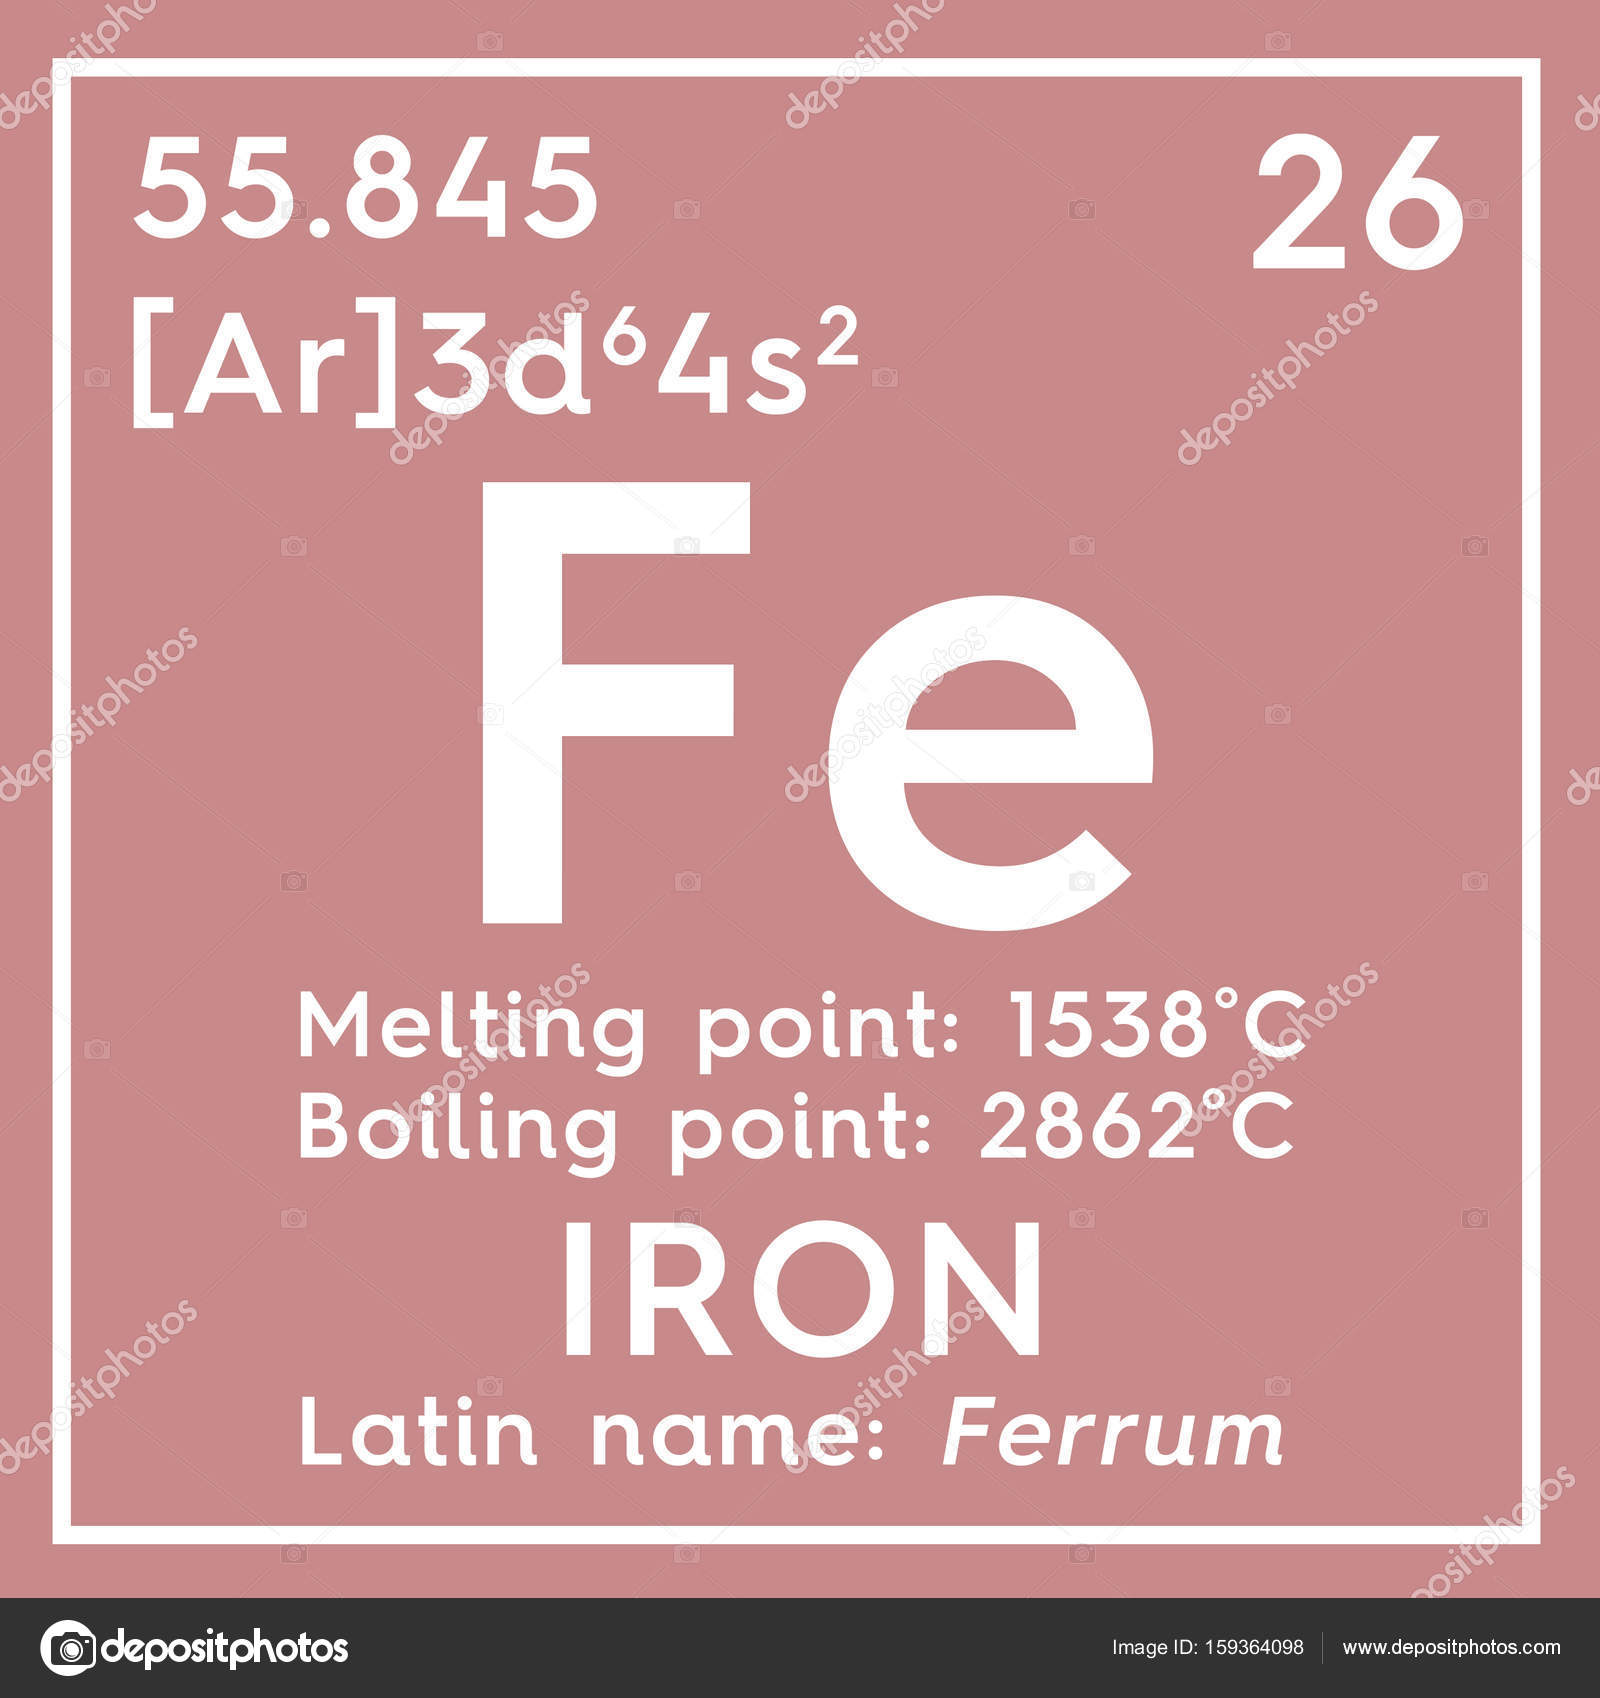 Iron ferrum transition metals chemical element of mendeleevs transition metals chemical element of mendeleevs periodic table stock urtaz Gallery